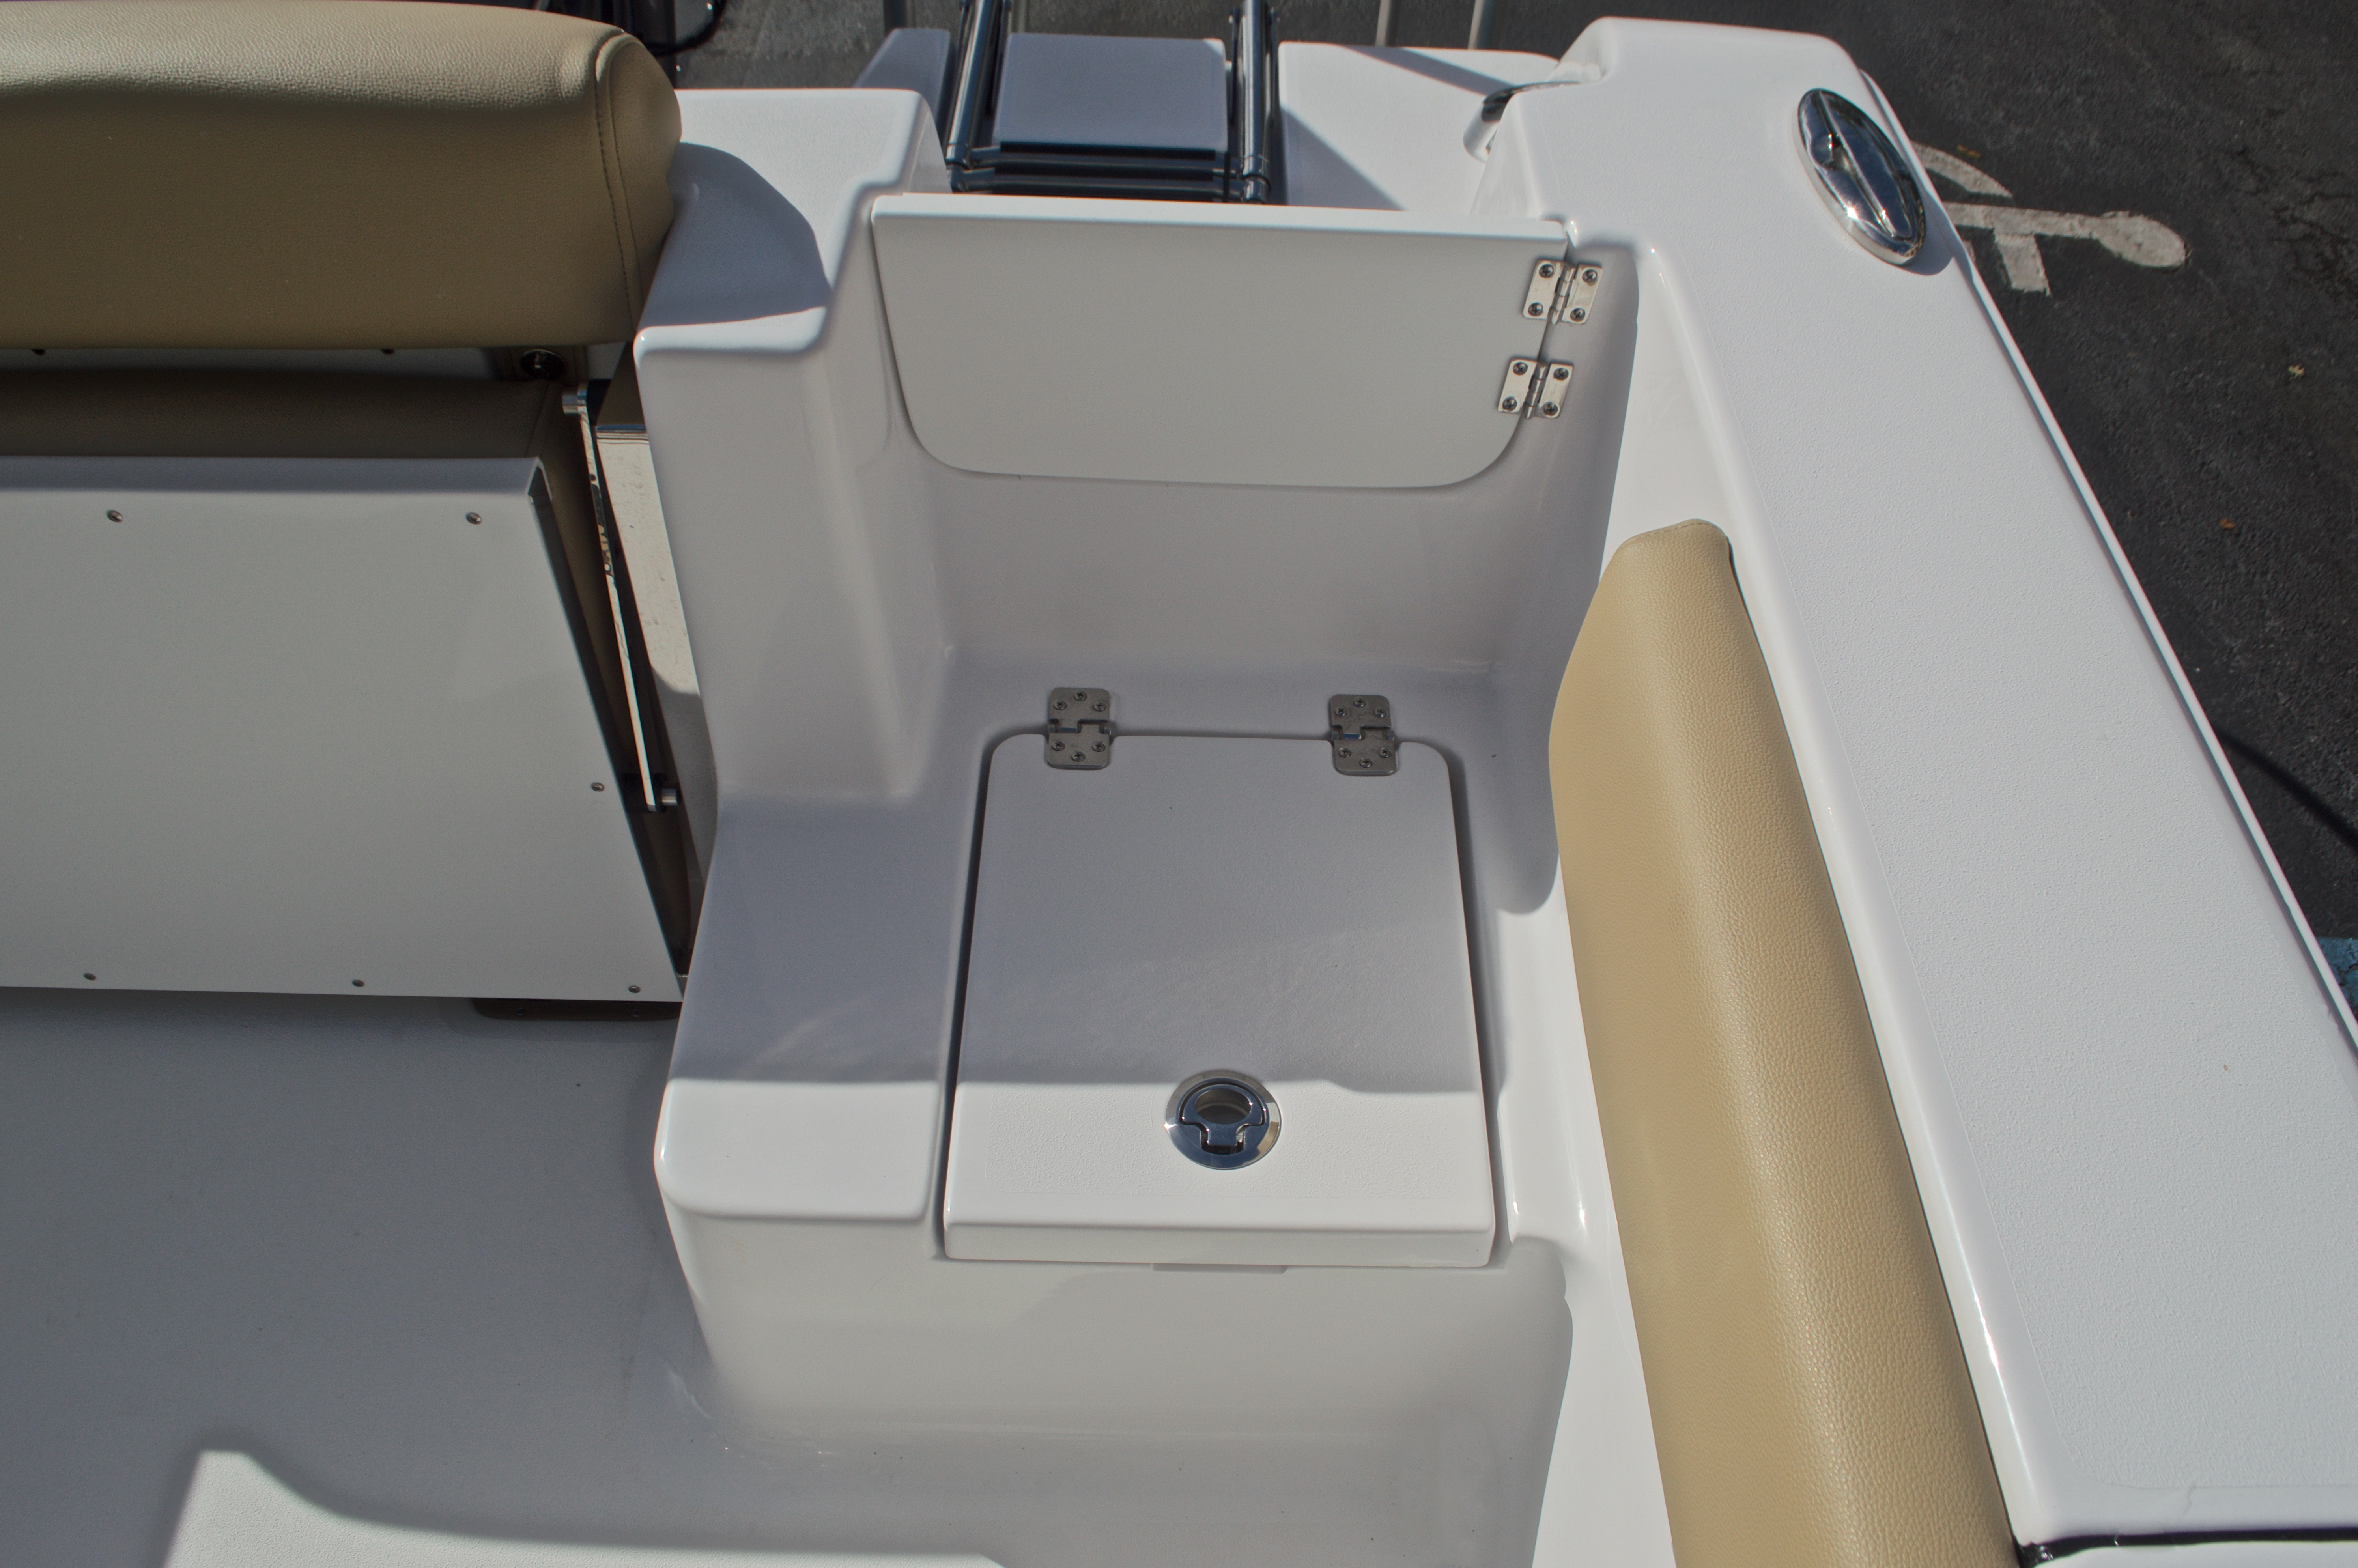 Thumbnail 20 for New 2017 Sportsman Open 212 Center Console boat for sale in West Palm Beach, FL